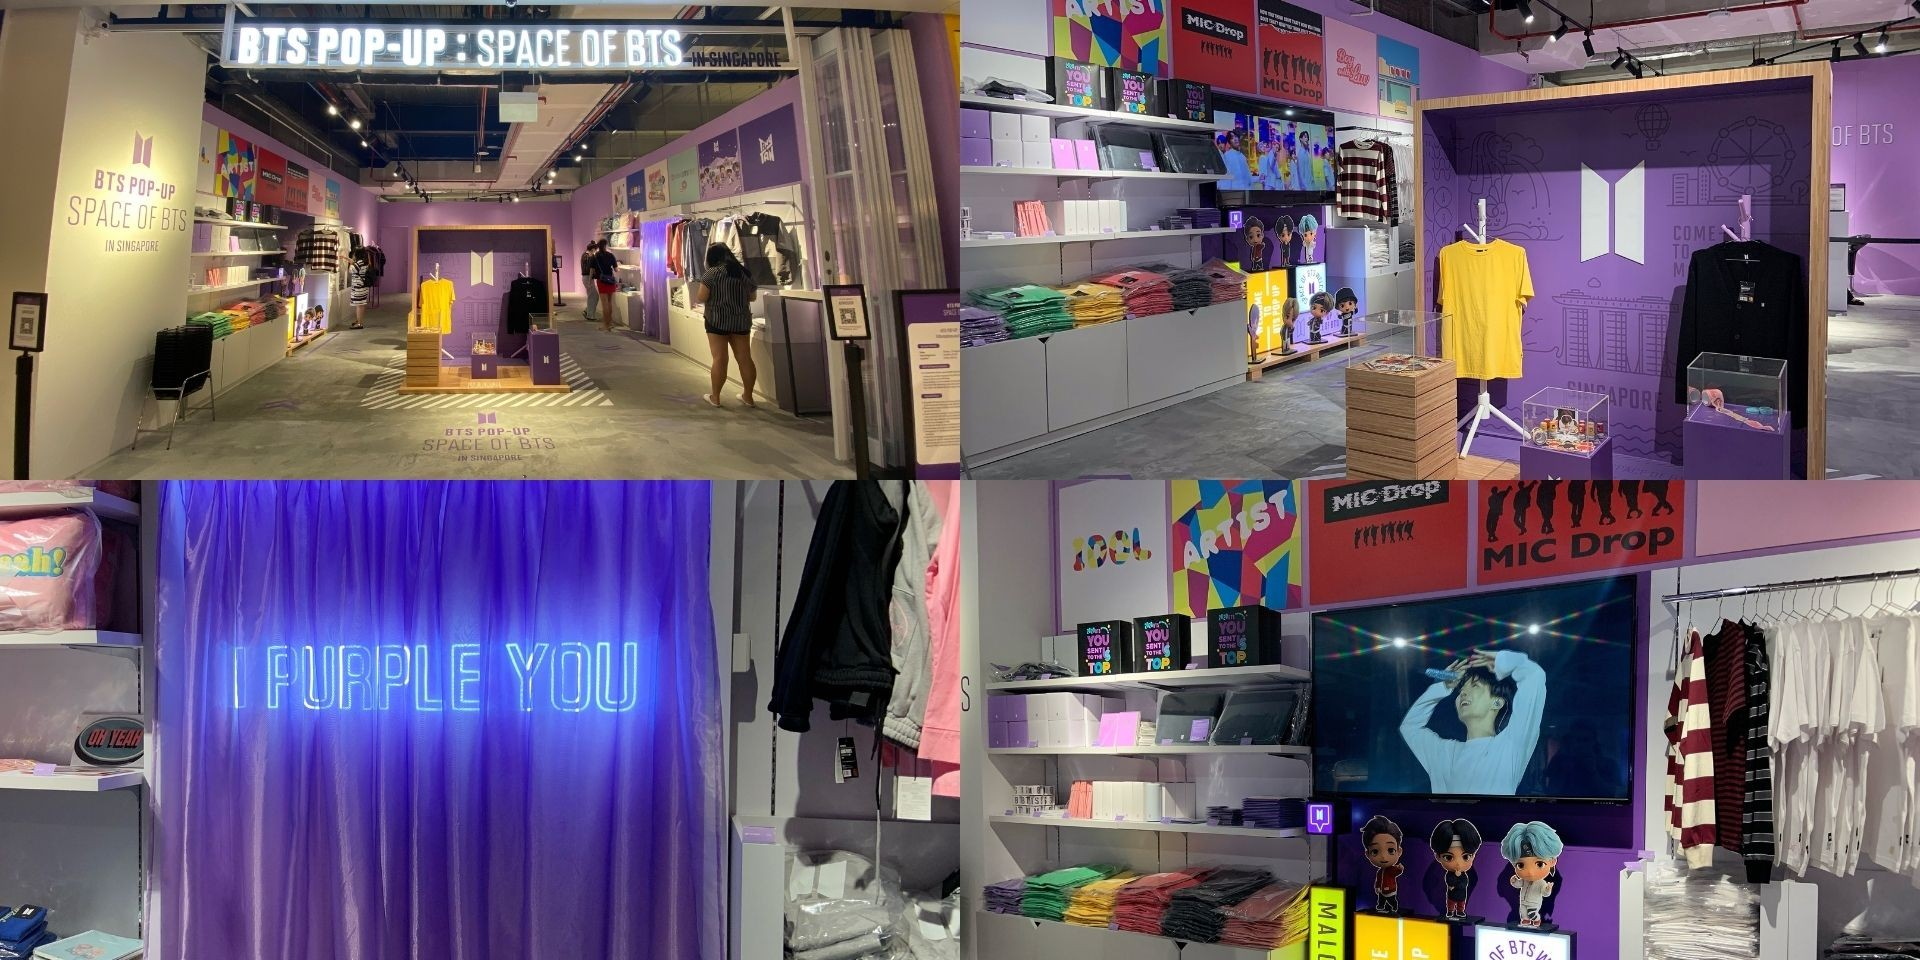 The BTS POP-UP: SPACE OF BTS arrives in Singapore — here's all you need to know